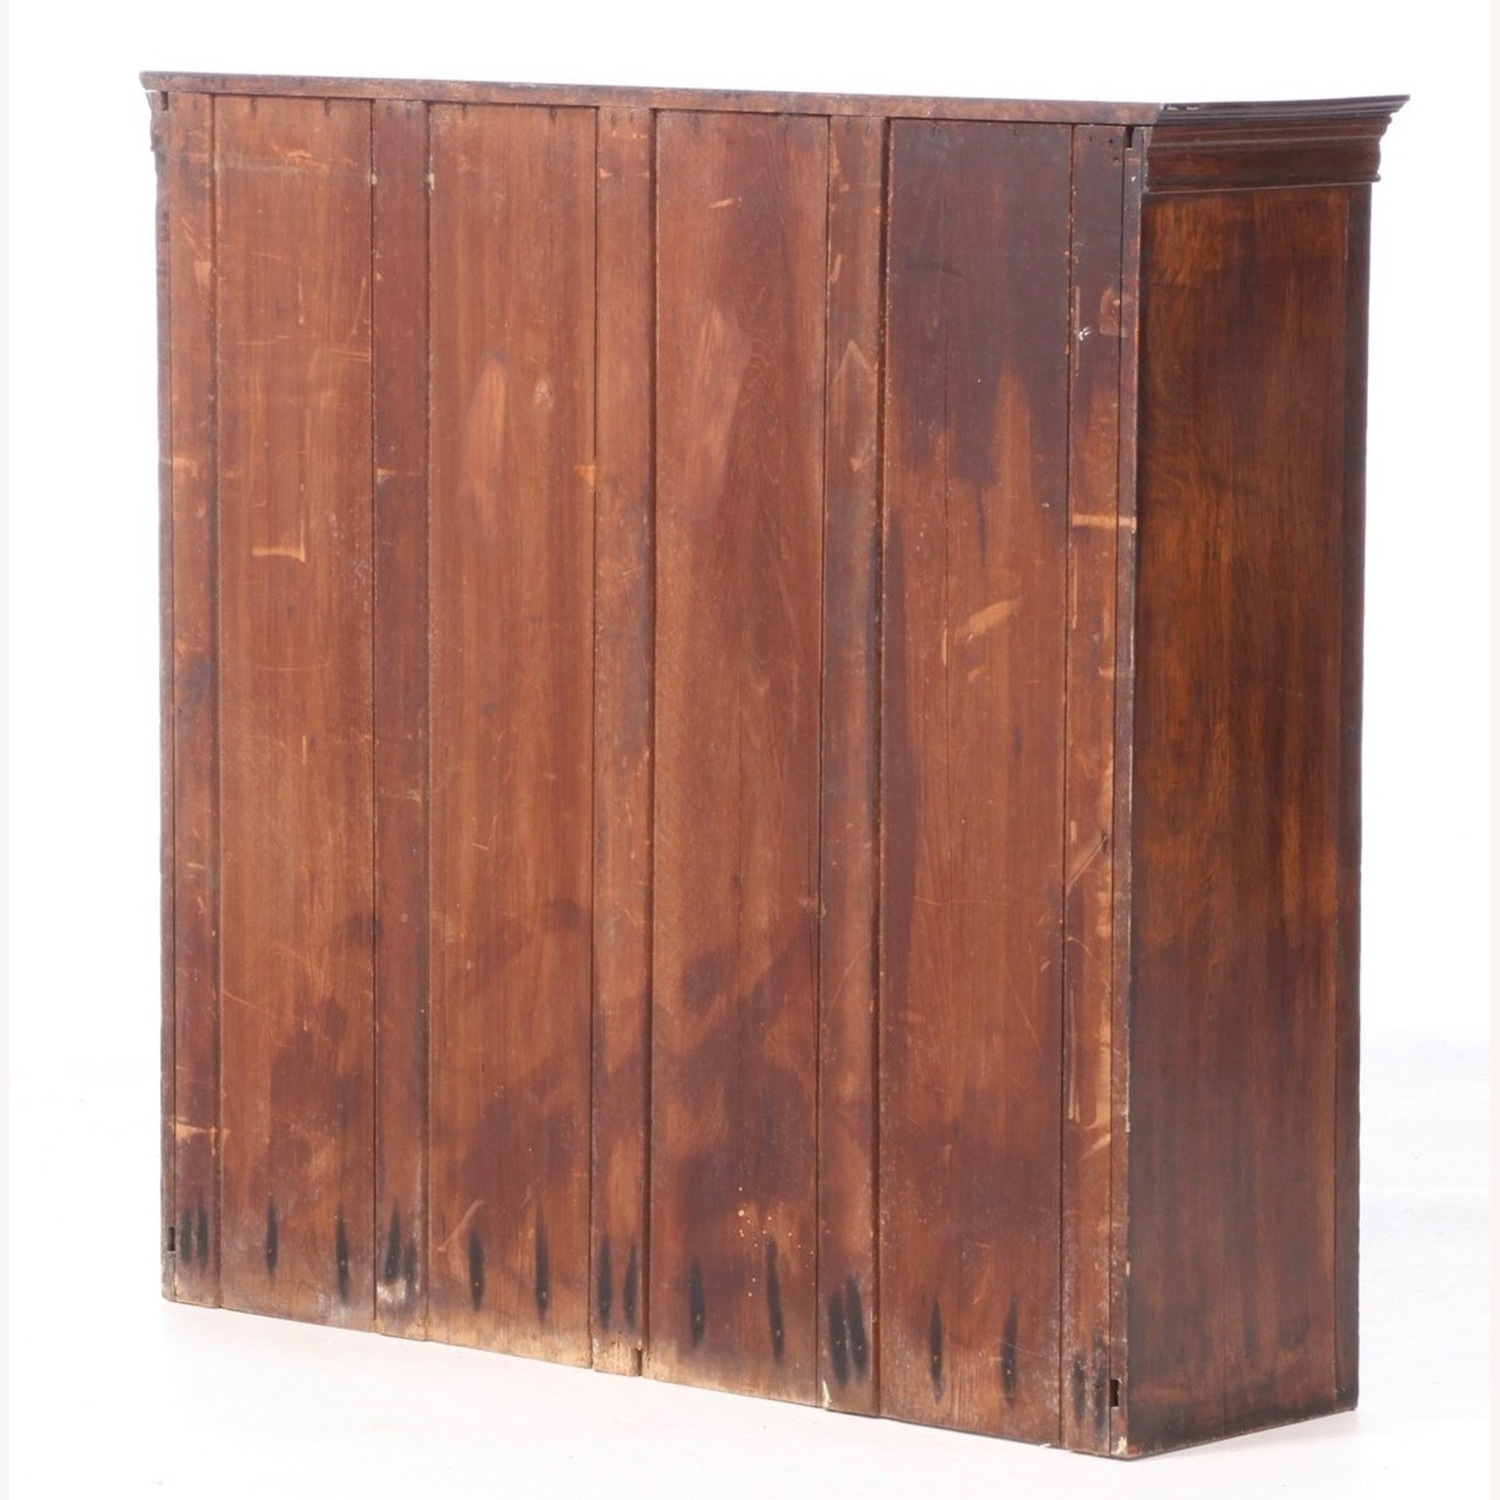 Oak Bookcase Cabinet, Early 20th Century - image-8